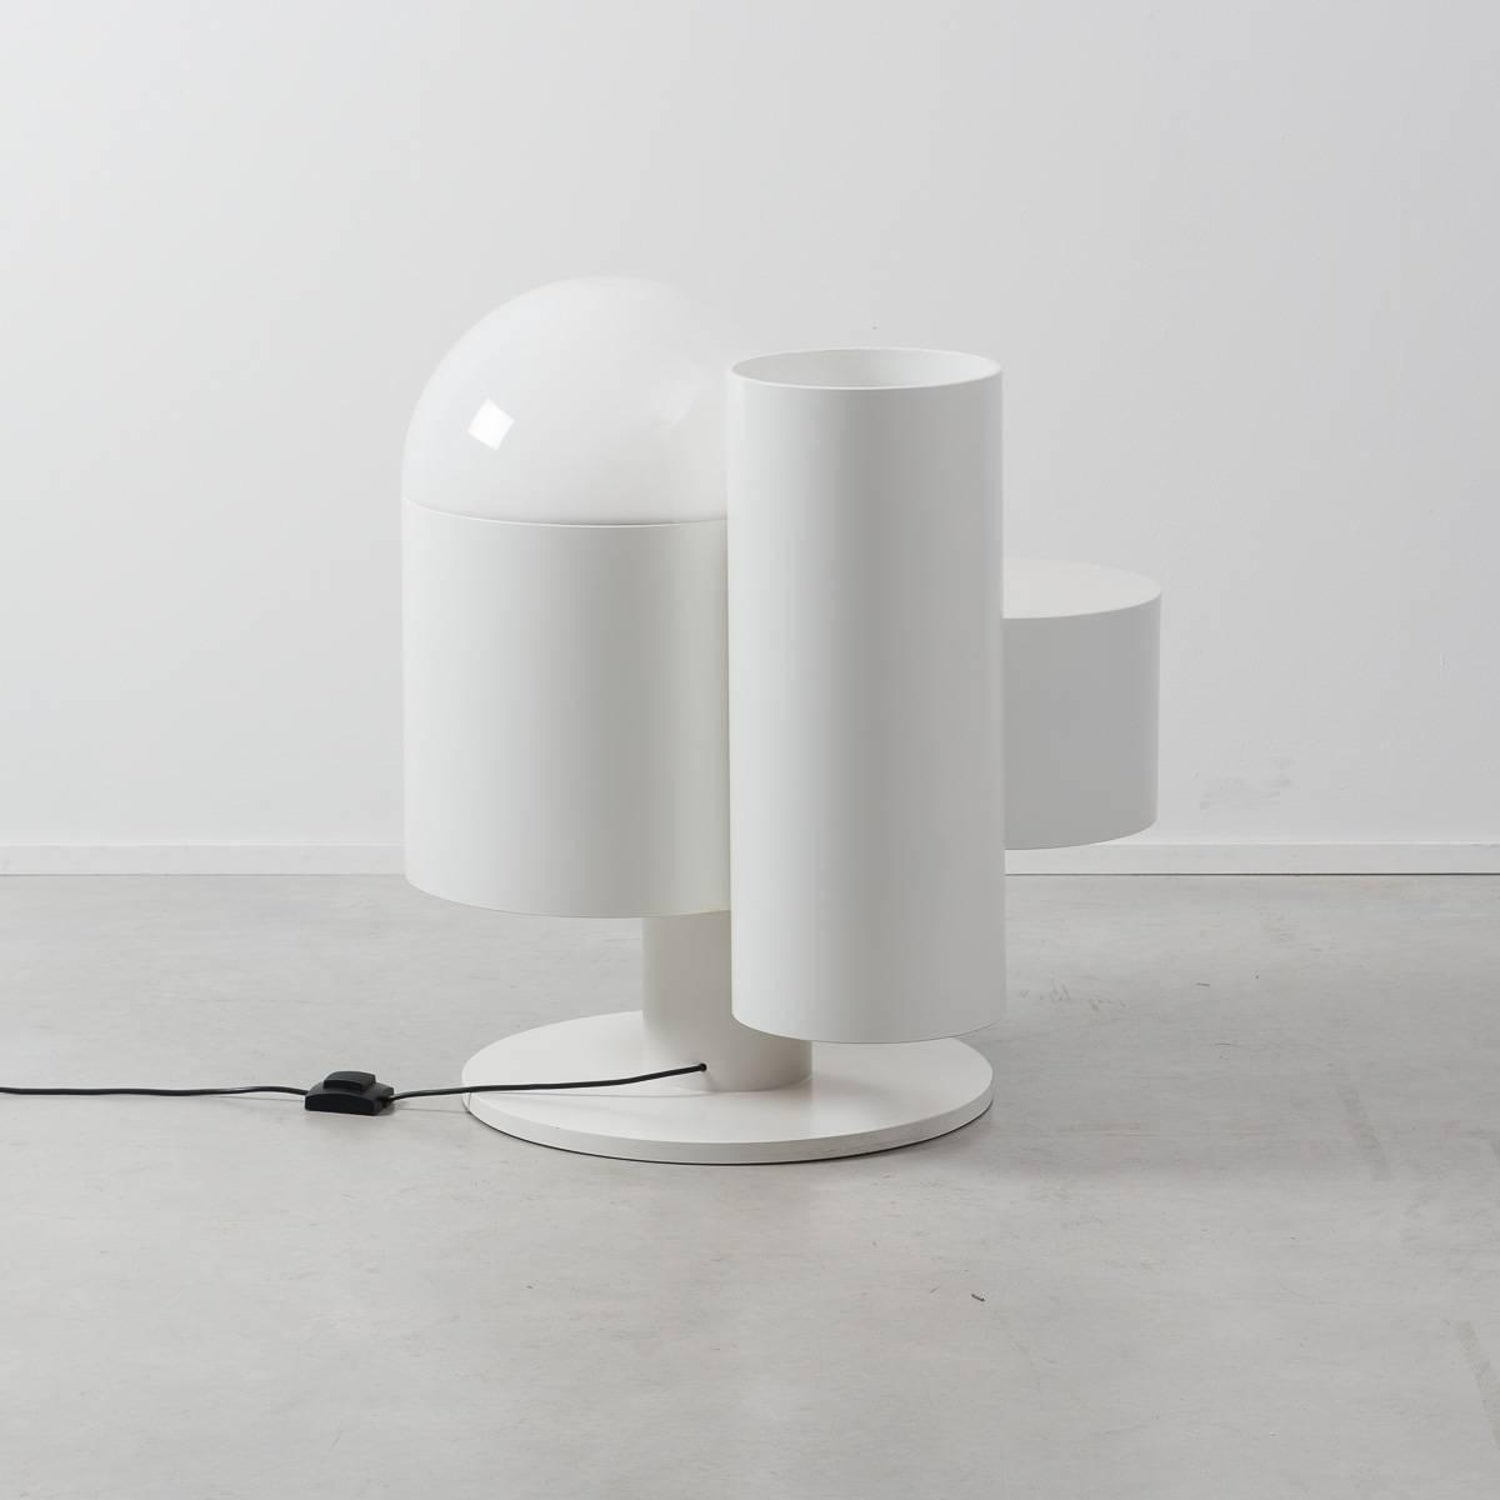 Close Encounter Lamp And Plant Stand, Kerst Koopman, Netherlands, 1988